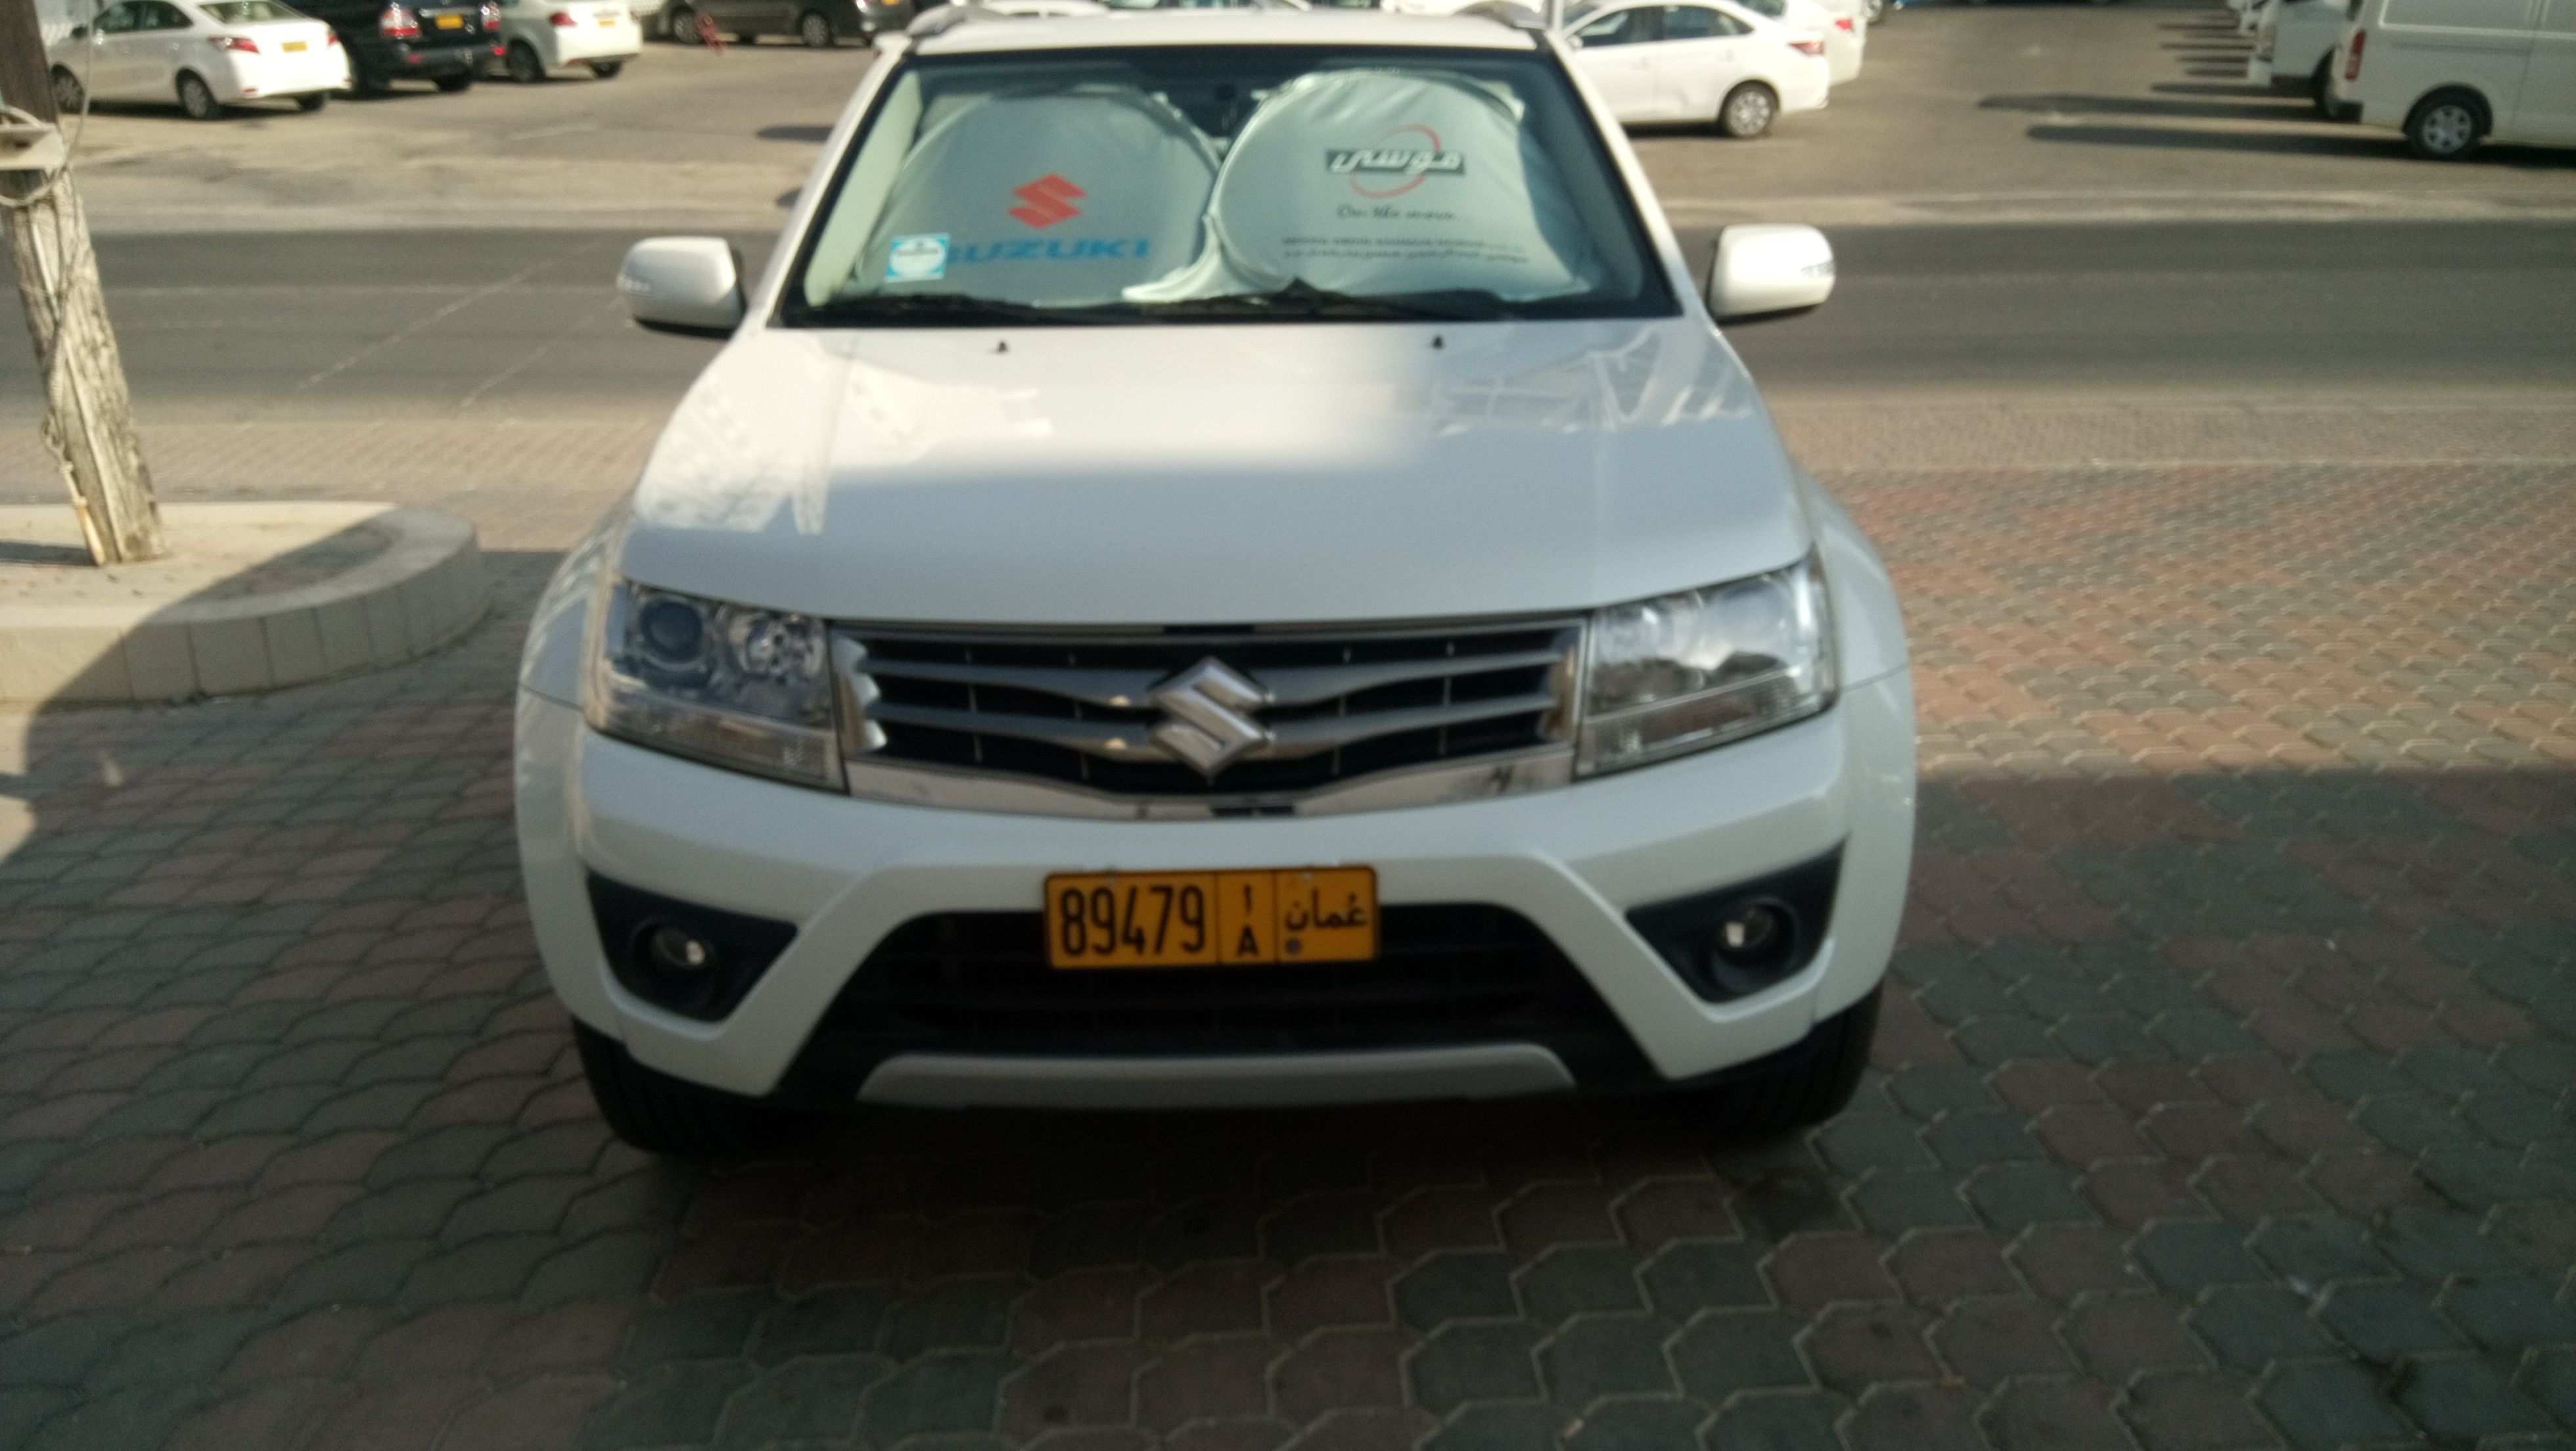 Used Armored Cars For Sale Ebay >> Used Cars For Sale In Oman | Autos Post